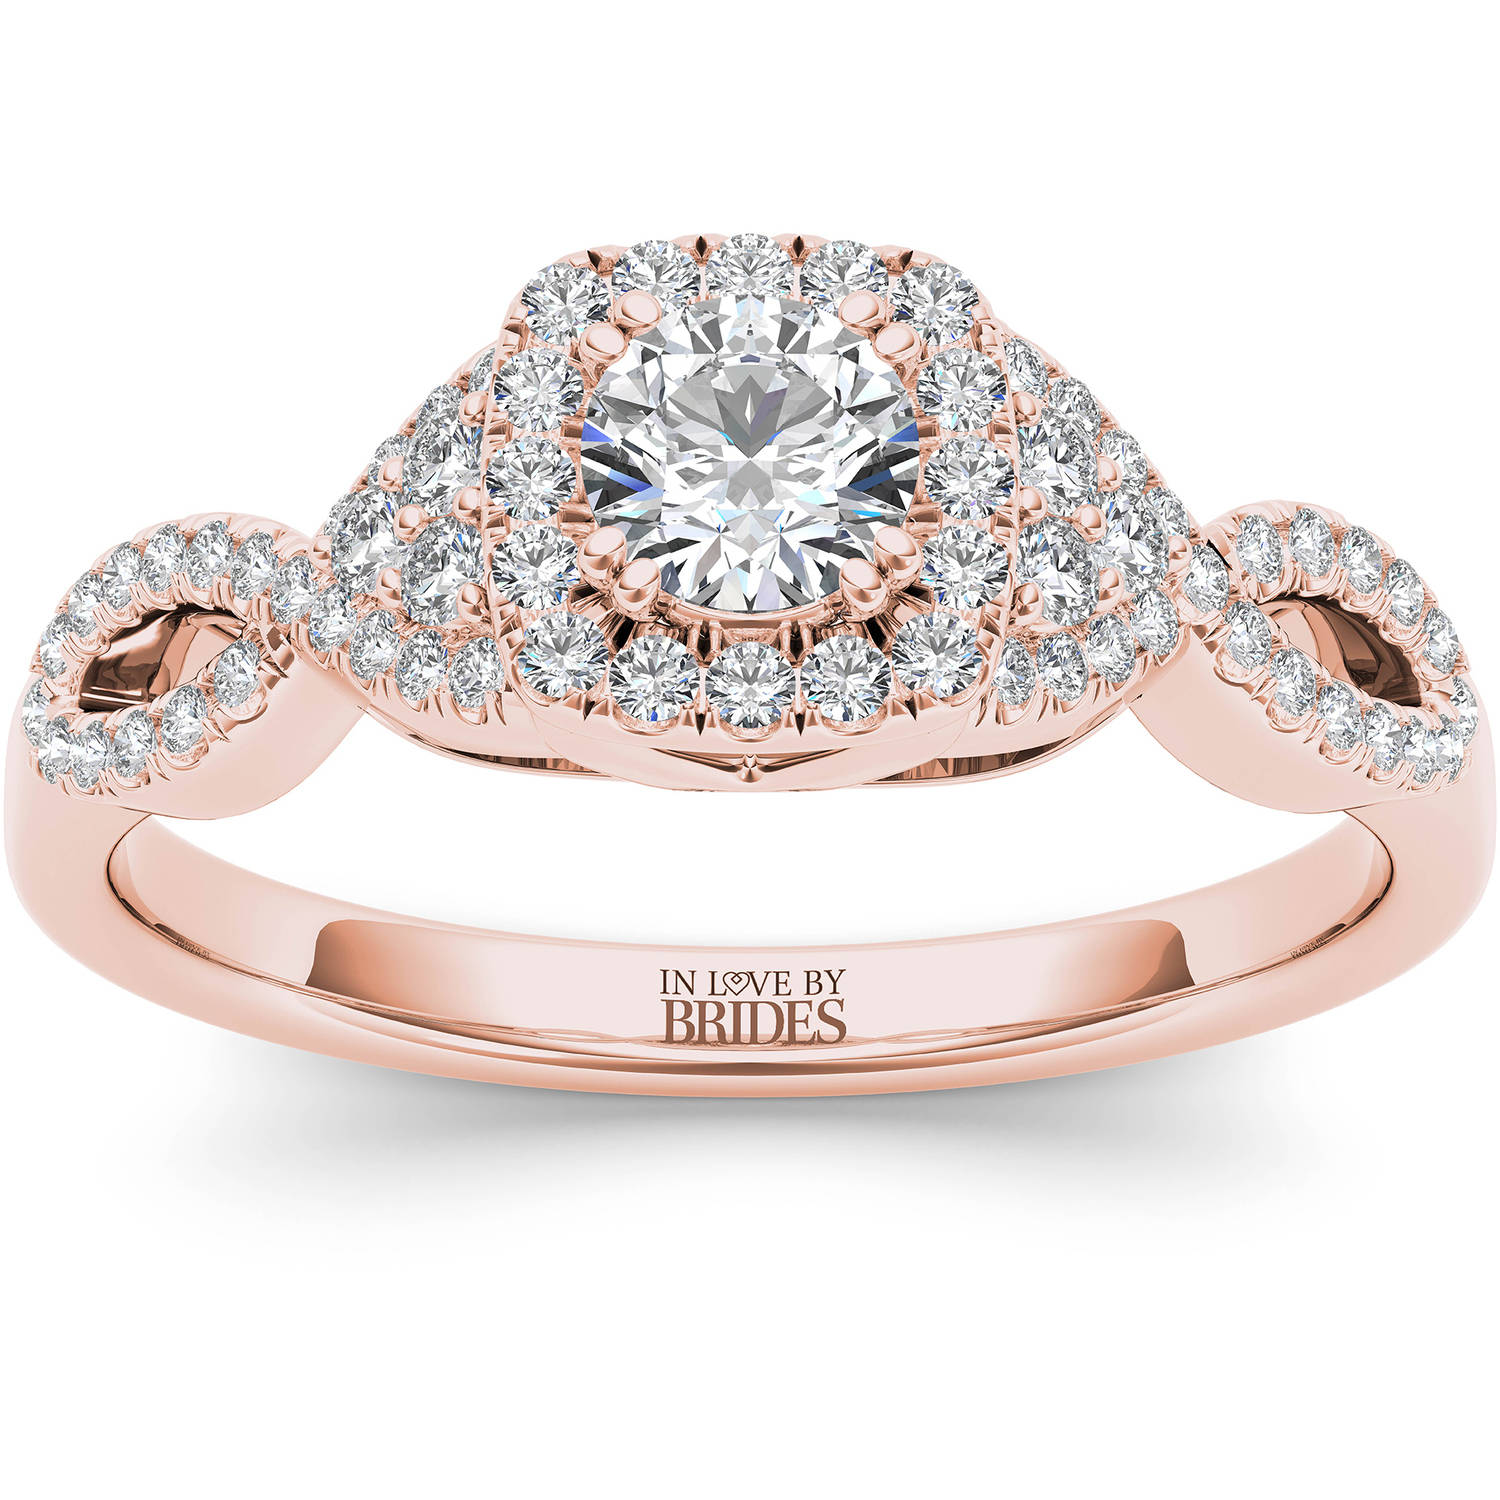 IN LOVE BY BRIDES 1/2 Carat T.W. Certified Diamond Twisted Shank Halo 14kt Pink Gold Engagement Ring